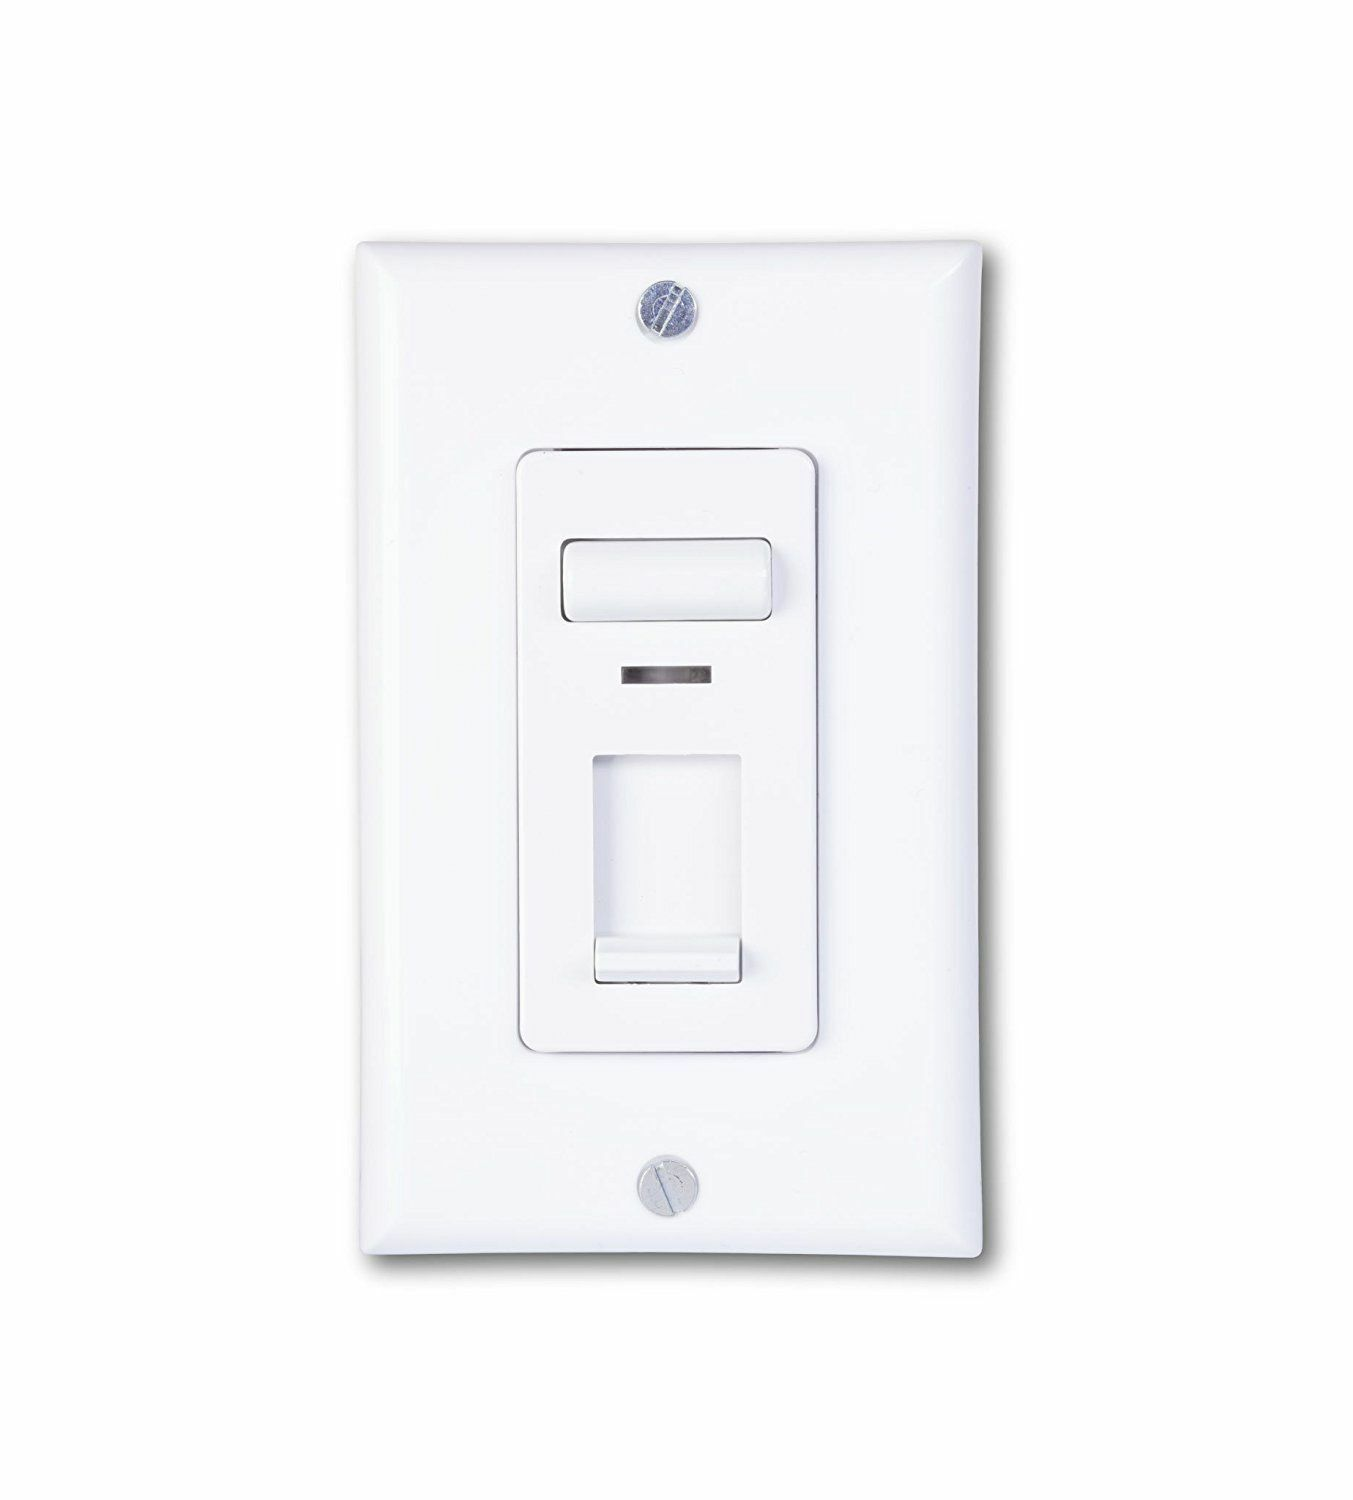 Century 600W Incandescent Wall 150W CFL Light Dimmer Switch